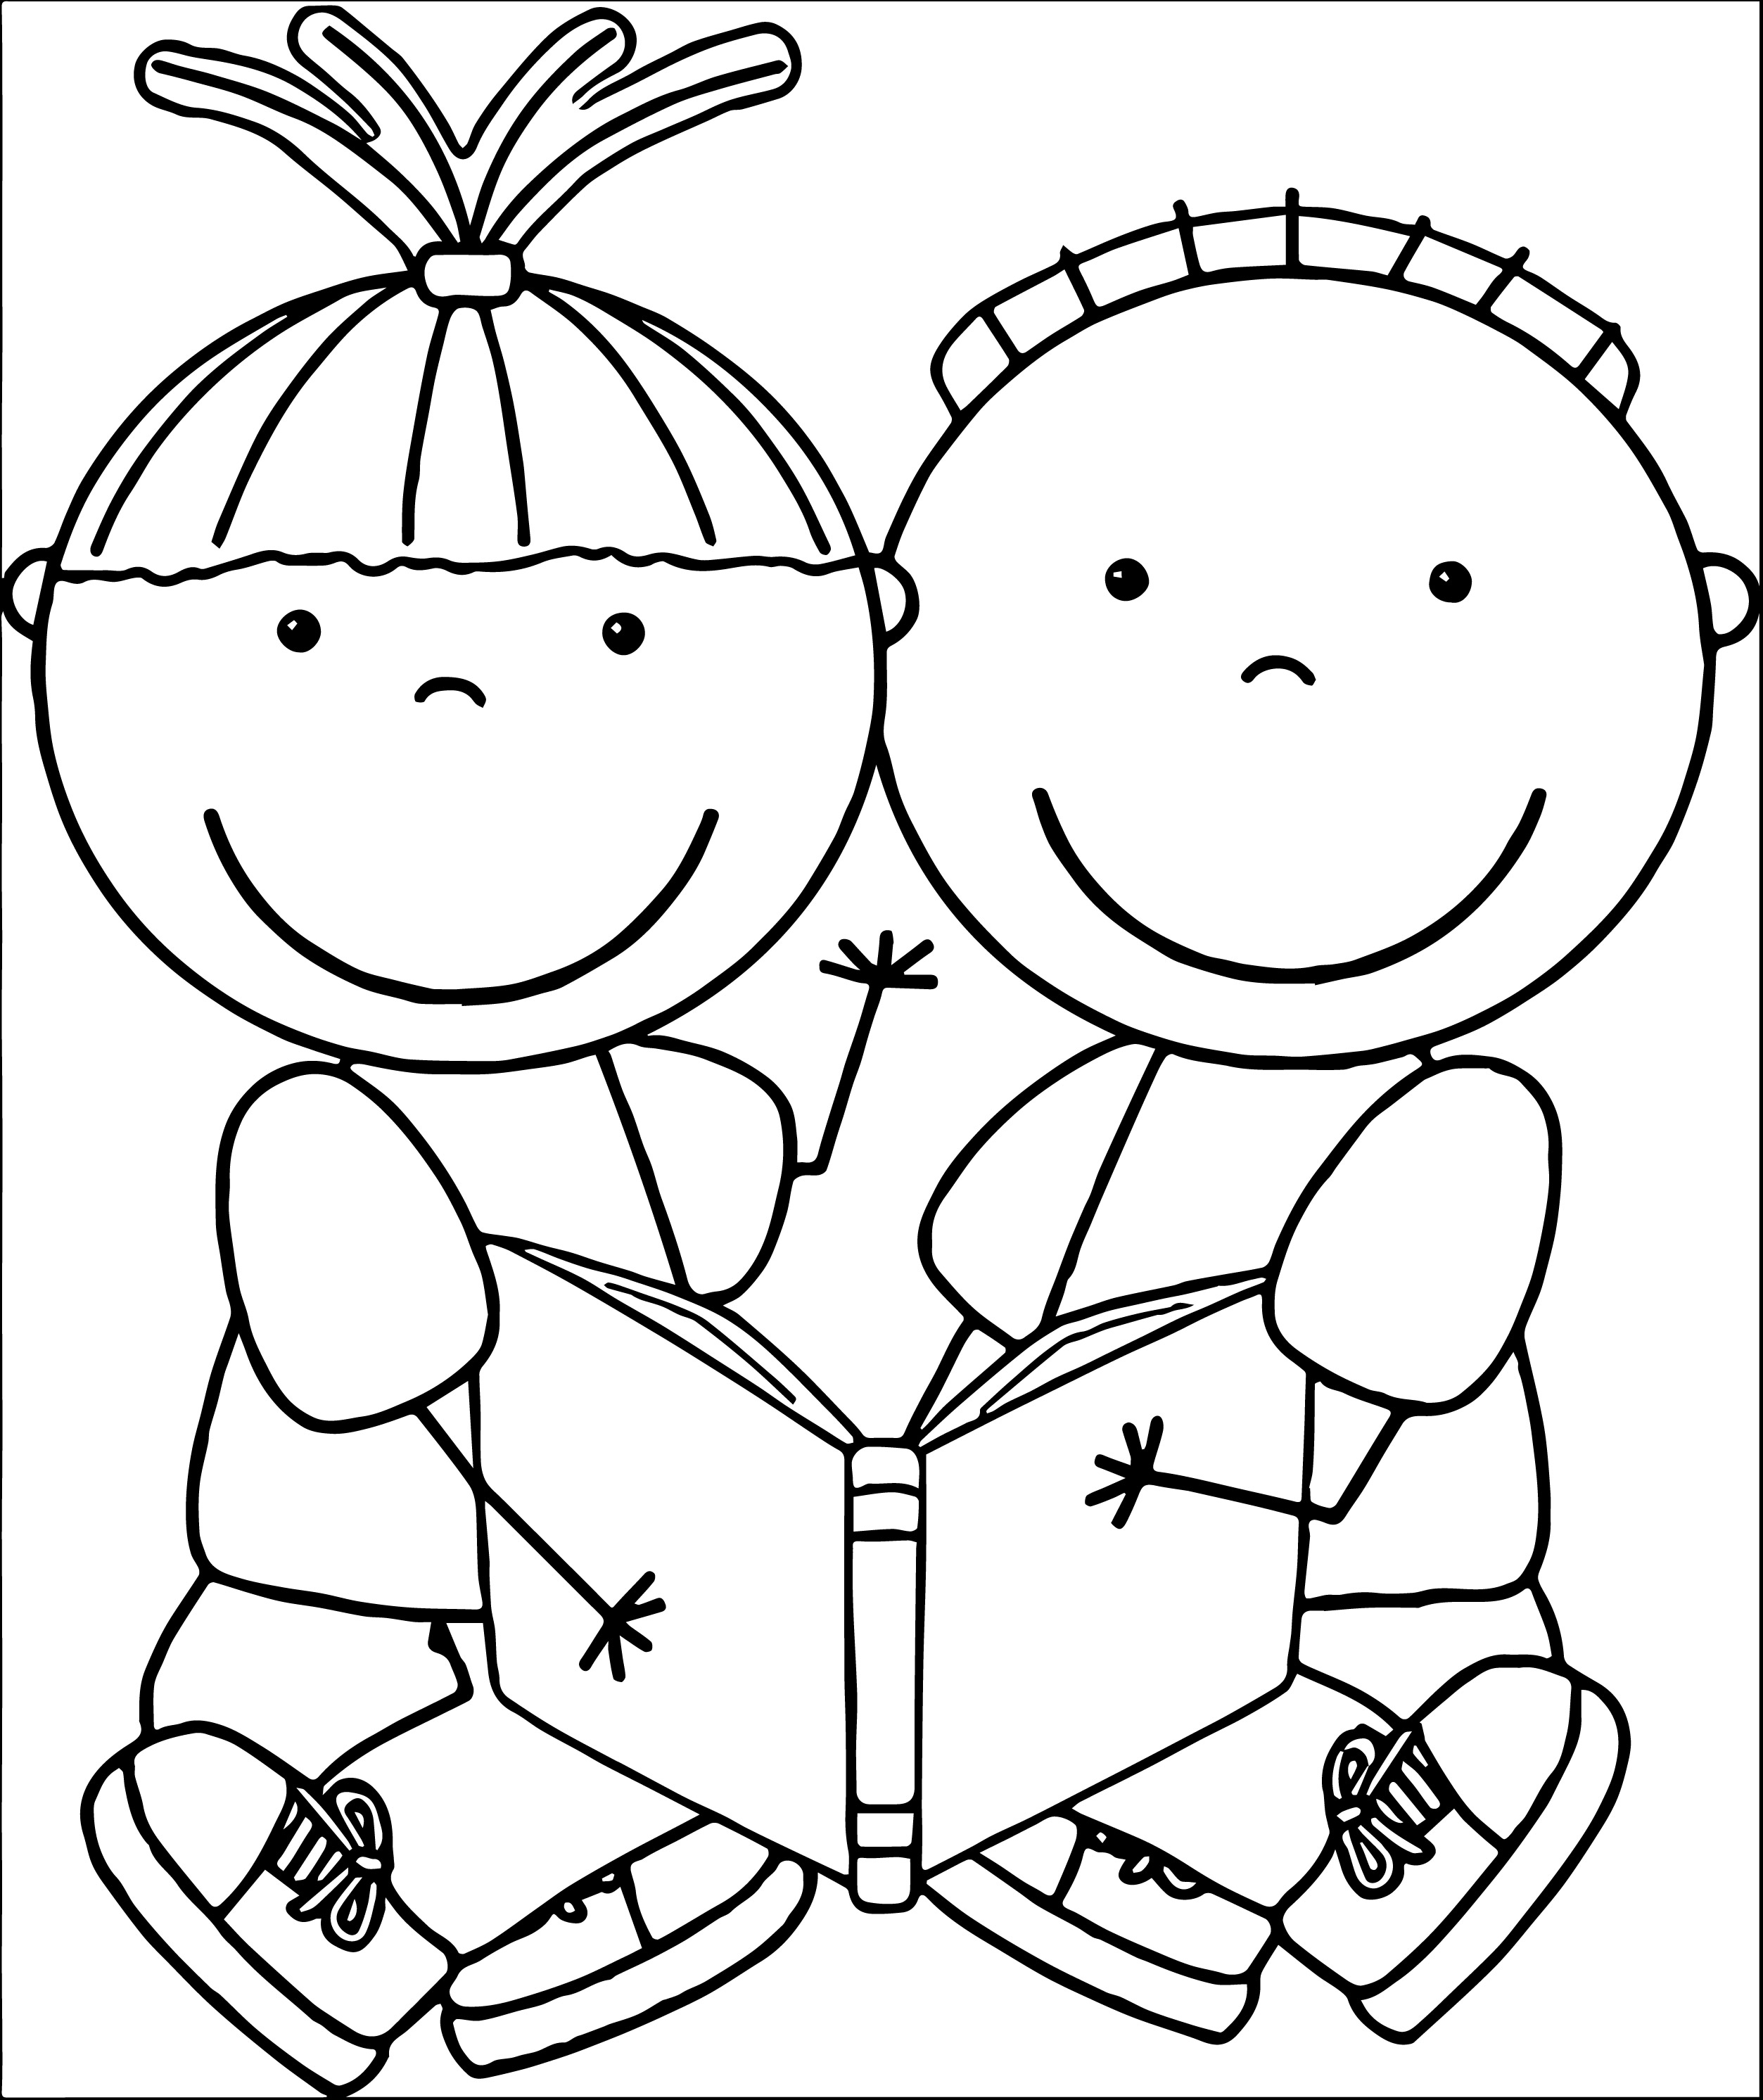 Kids being kind clipart black and white picture freeuse download Kid reading child reading a book clipart black and white clipartfest ... picture freeuse download